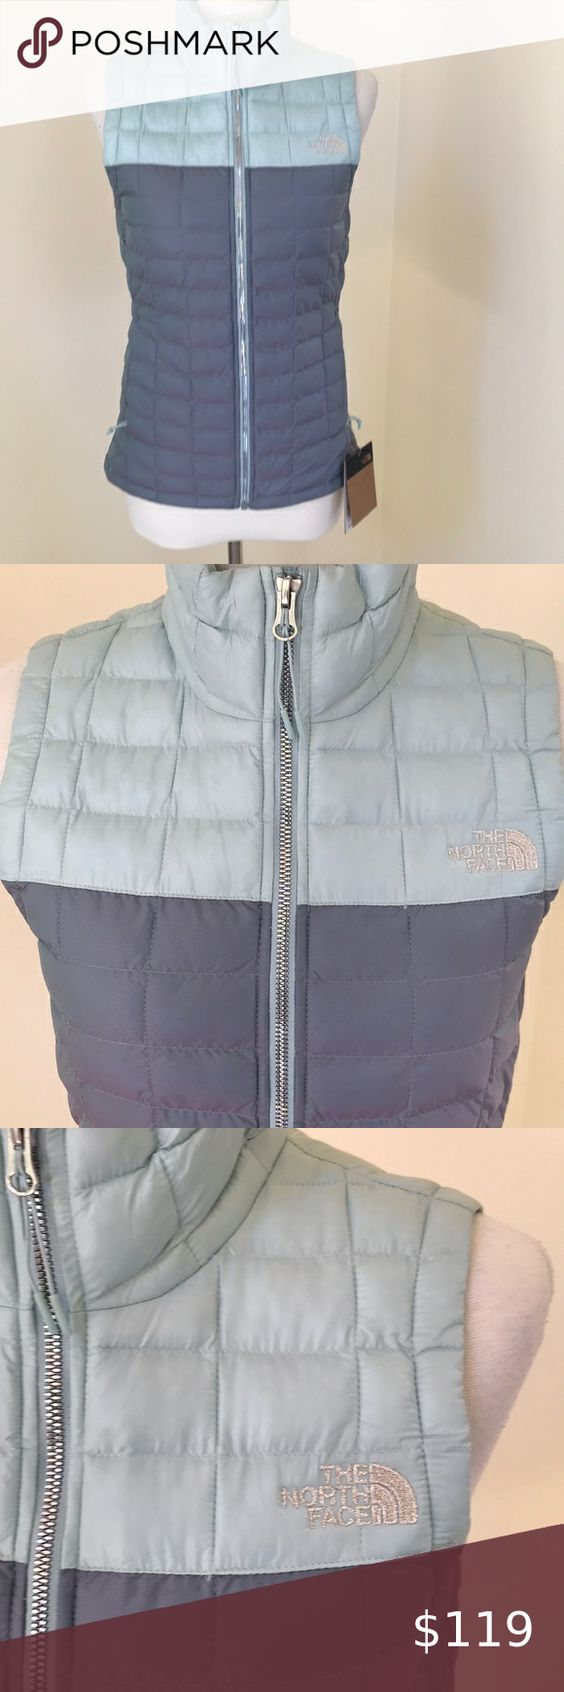 Nwt The North Face Xs Thermoball Eco Vest The North Face Xs Blue Frost Iridescent Thermoball Eco Waist The N The North Face Clothes Design North Face Jacket [ 1692 x 564 Pixel ]